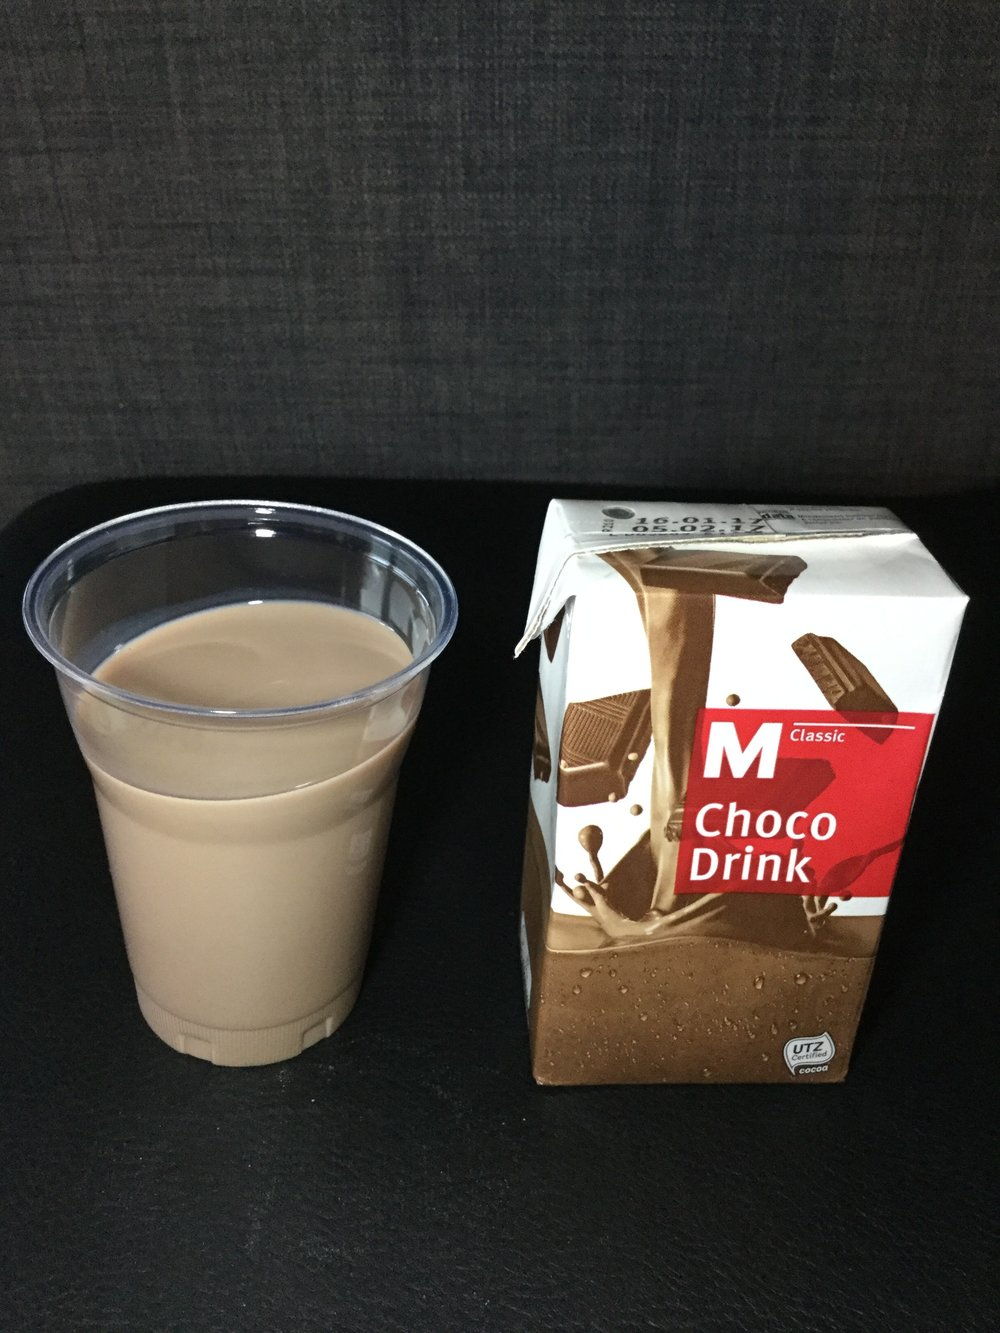 Migros Classic Choco Drink Cup